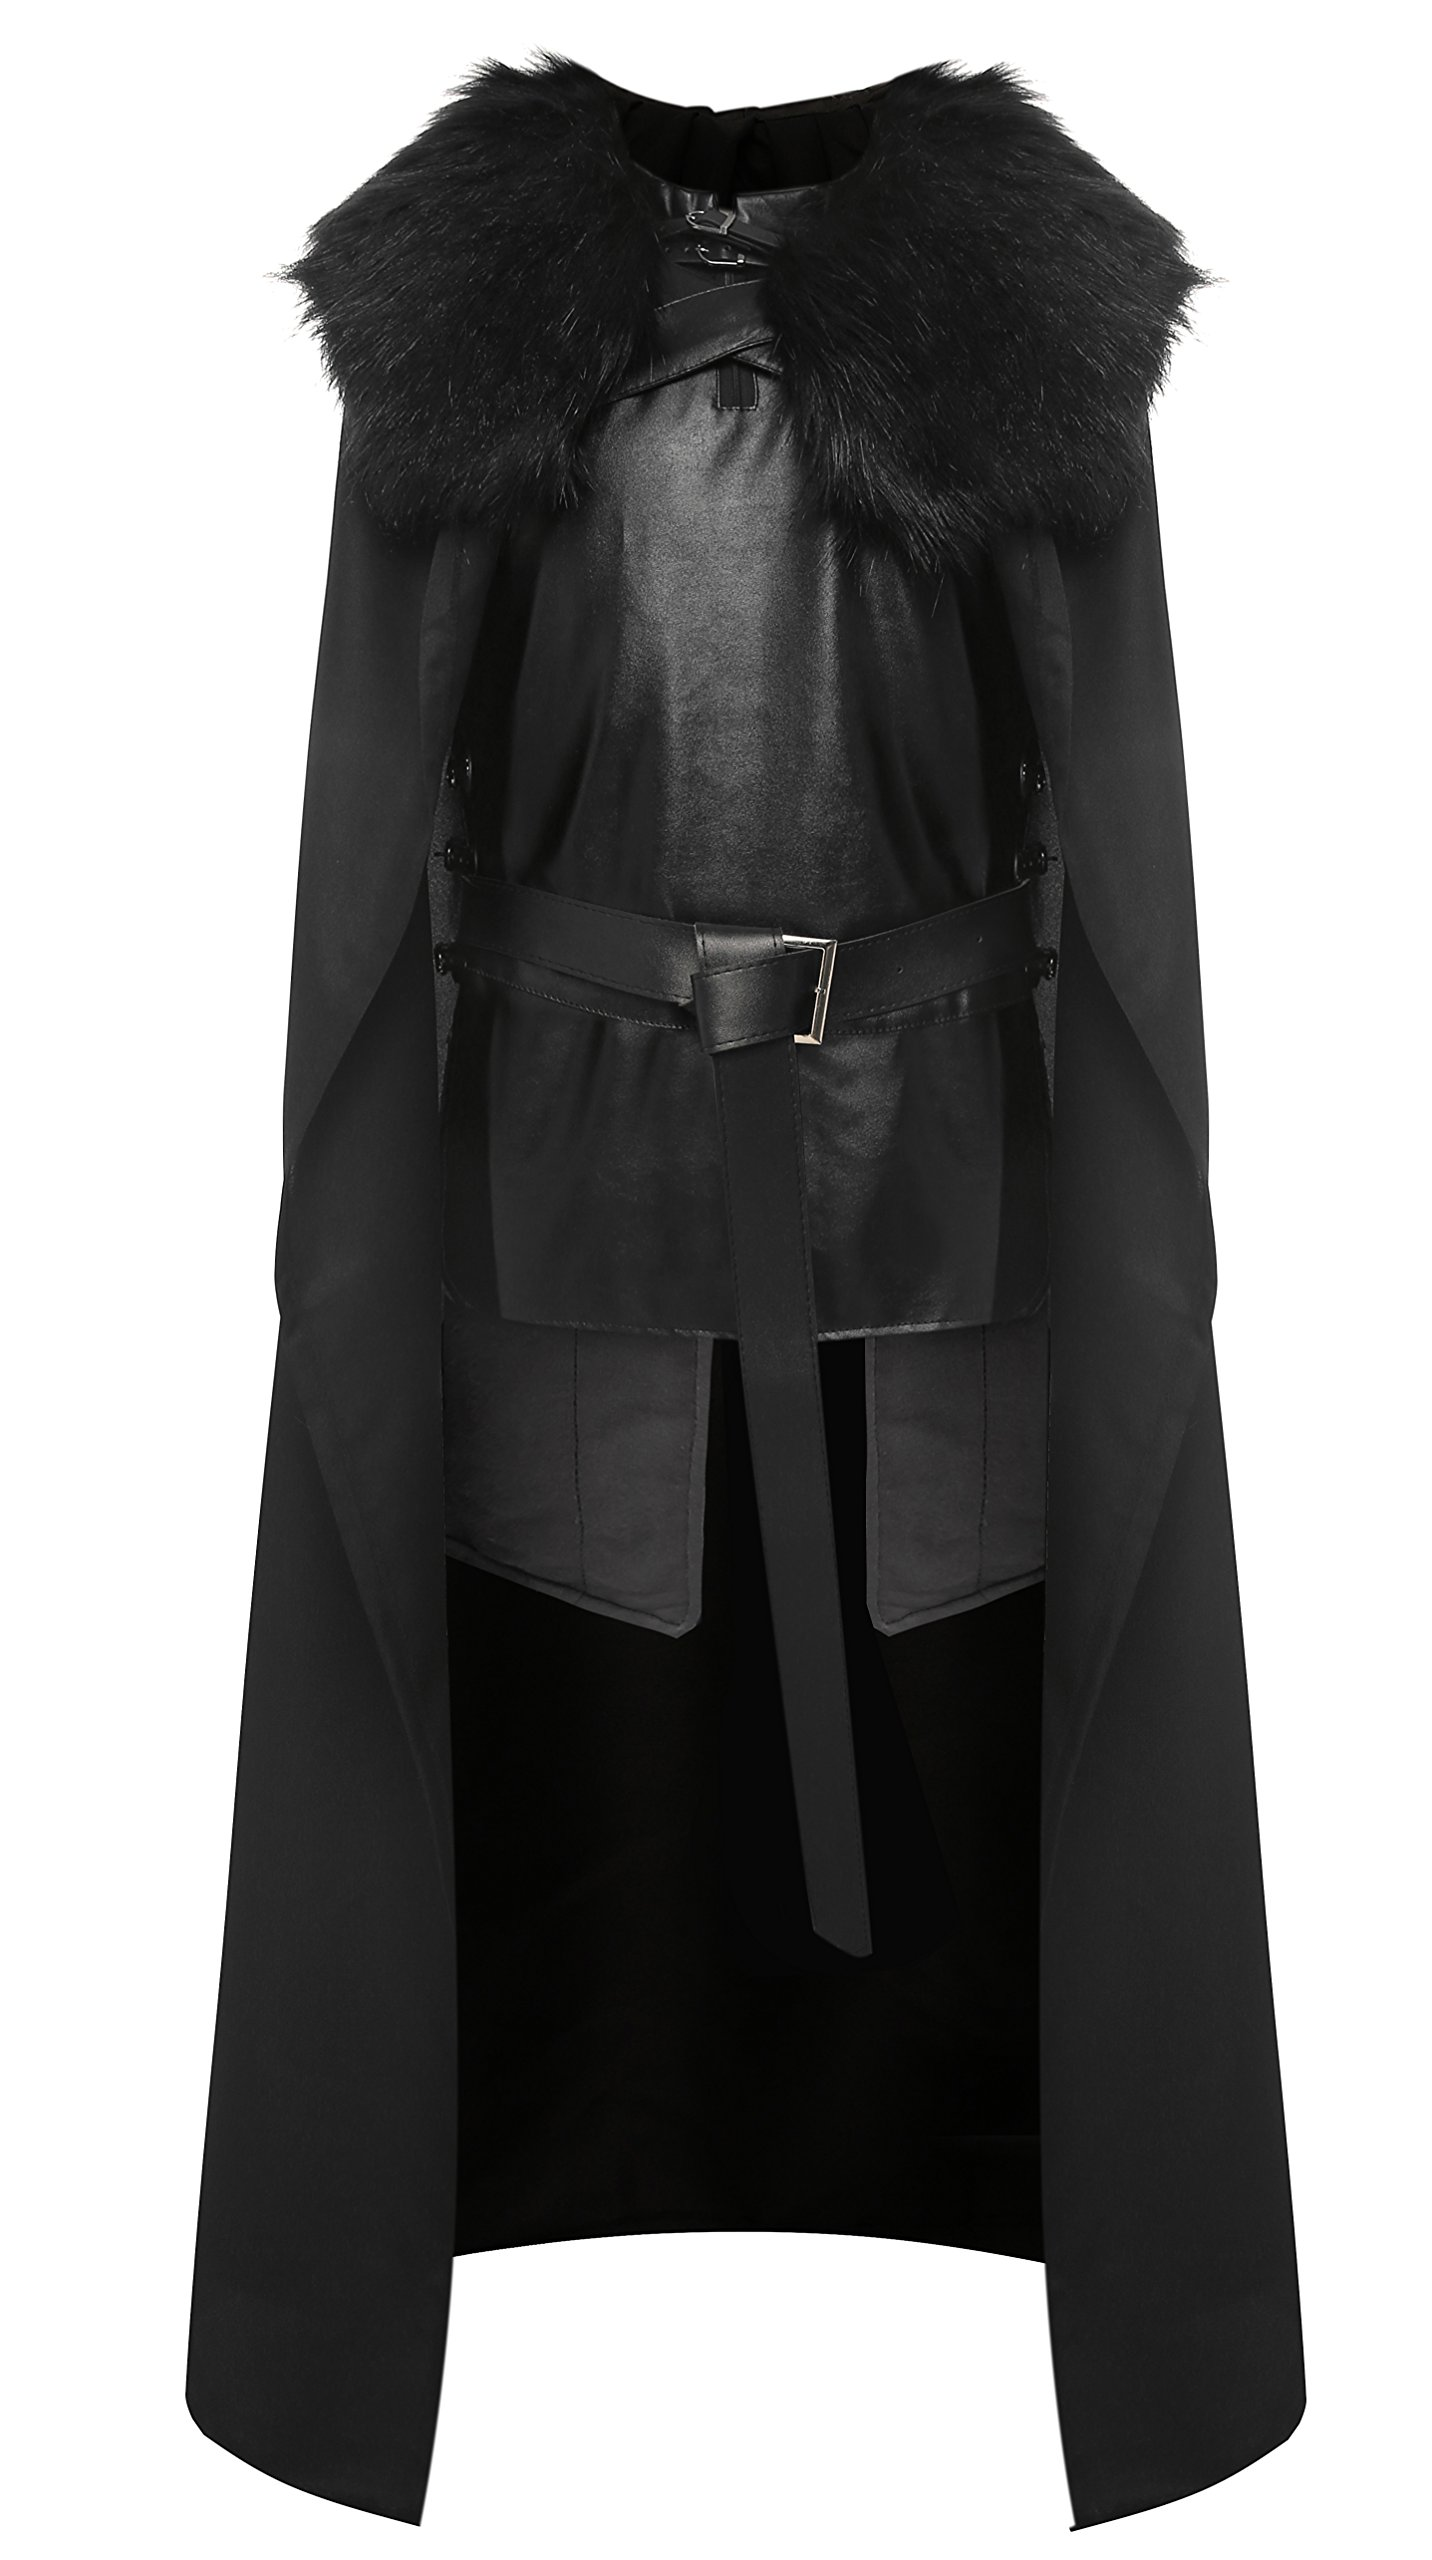 1stvital Jon Snow Knights Watch Cosplay Halloween Costume Cape Outfit Men's X-Large by 1stvital (Image #1)